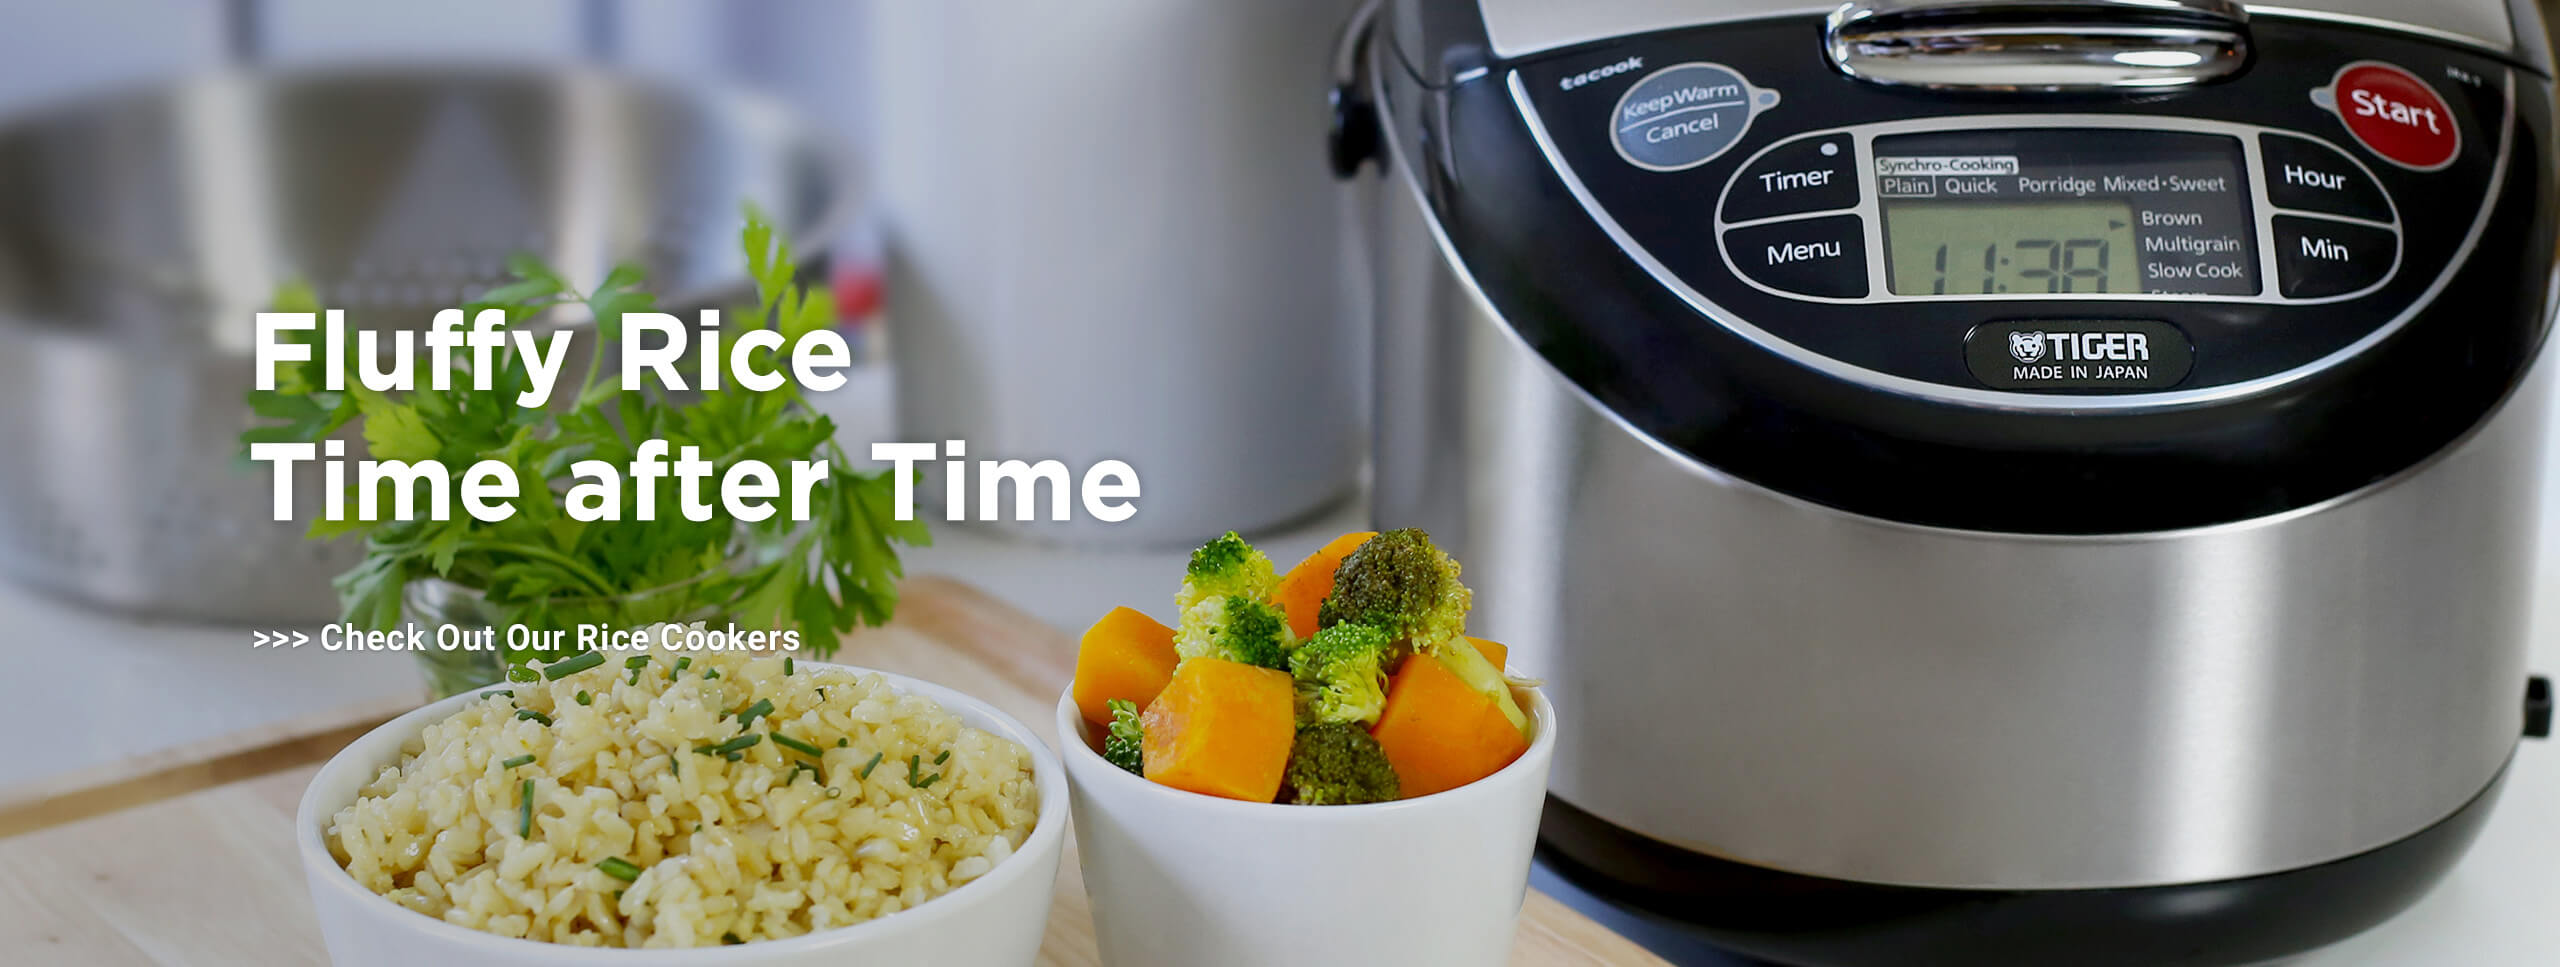 Fluffy Rice Time after Time Check Out Our Rice Cookers